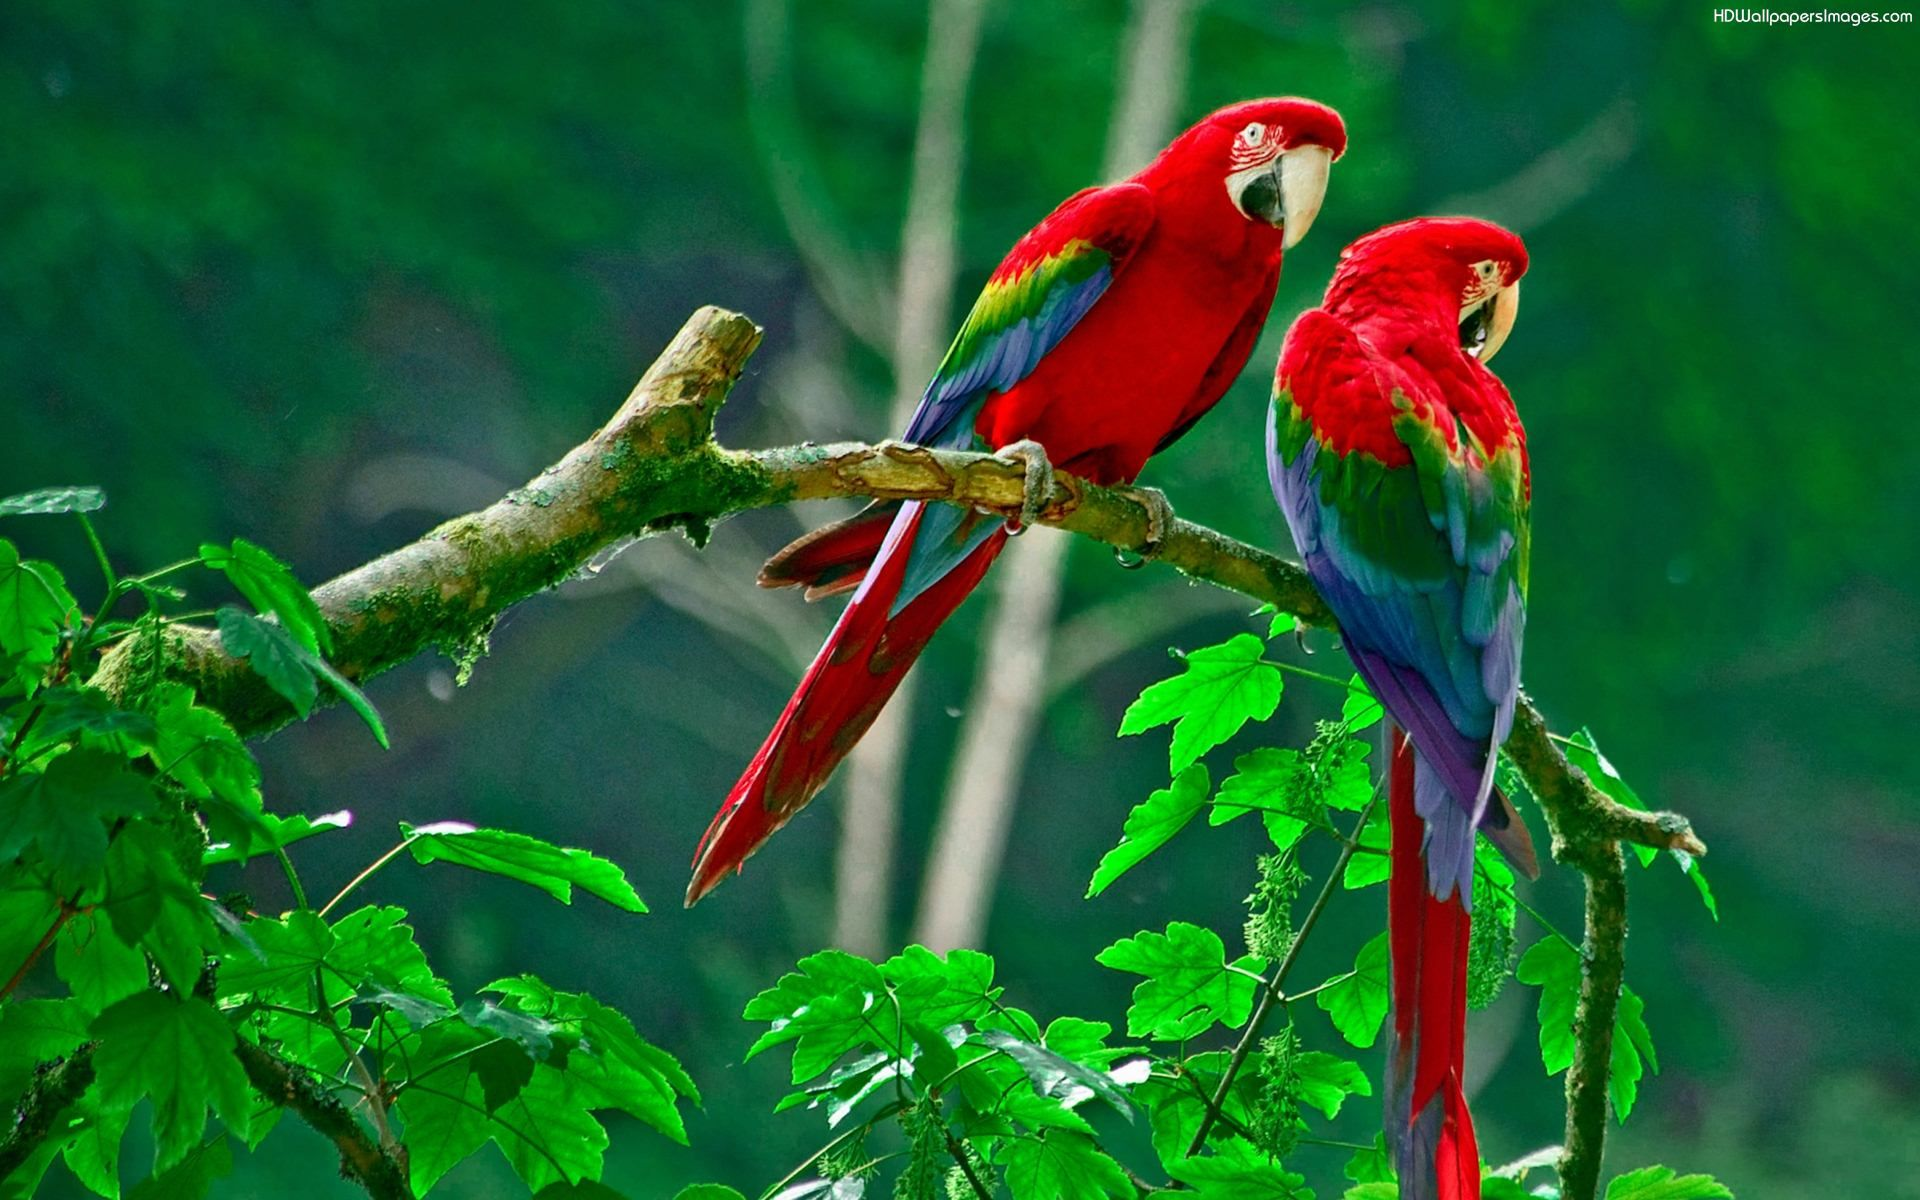 Parrots Couple Hd Wallpapers Images Parrot Wallpaper Birds